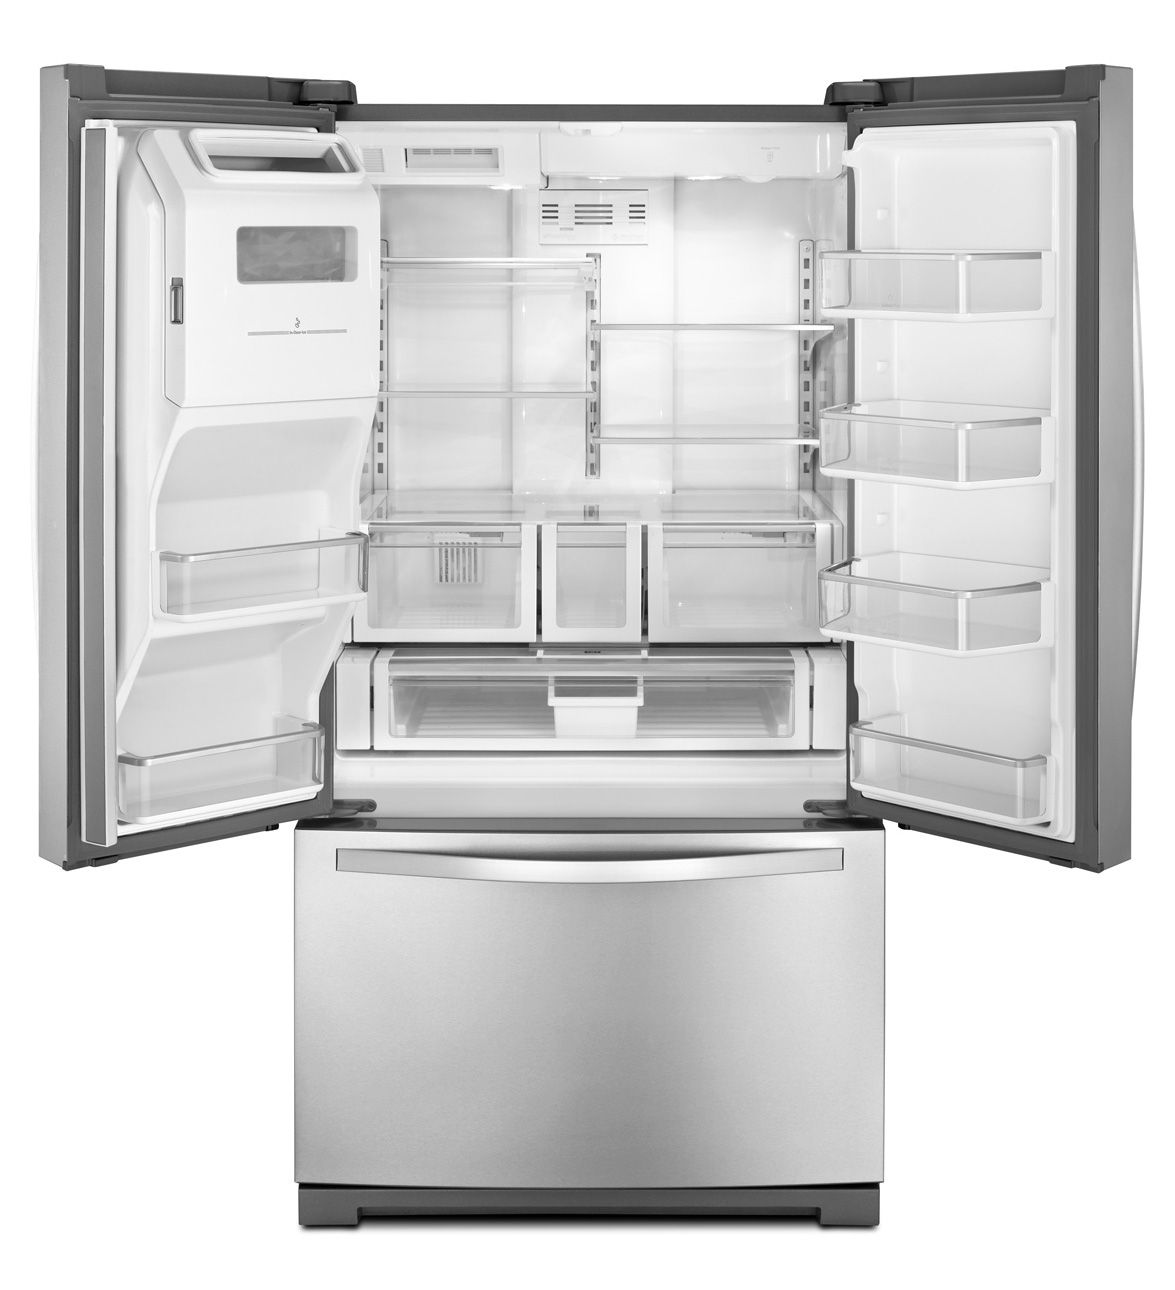 Whirlpool white ice french door - Whirlpool White Ice Collection French Door Refrigerator With Flexible Capacity